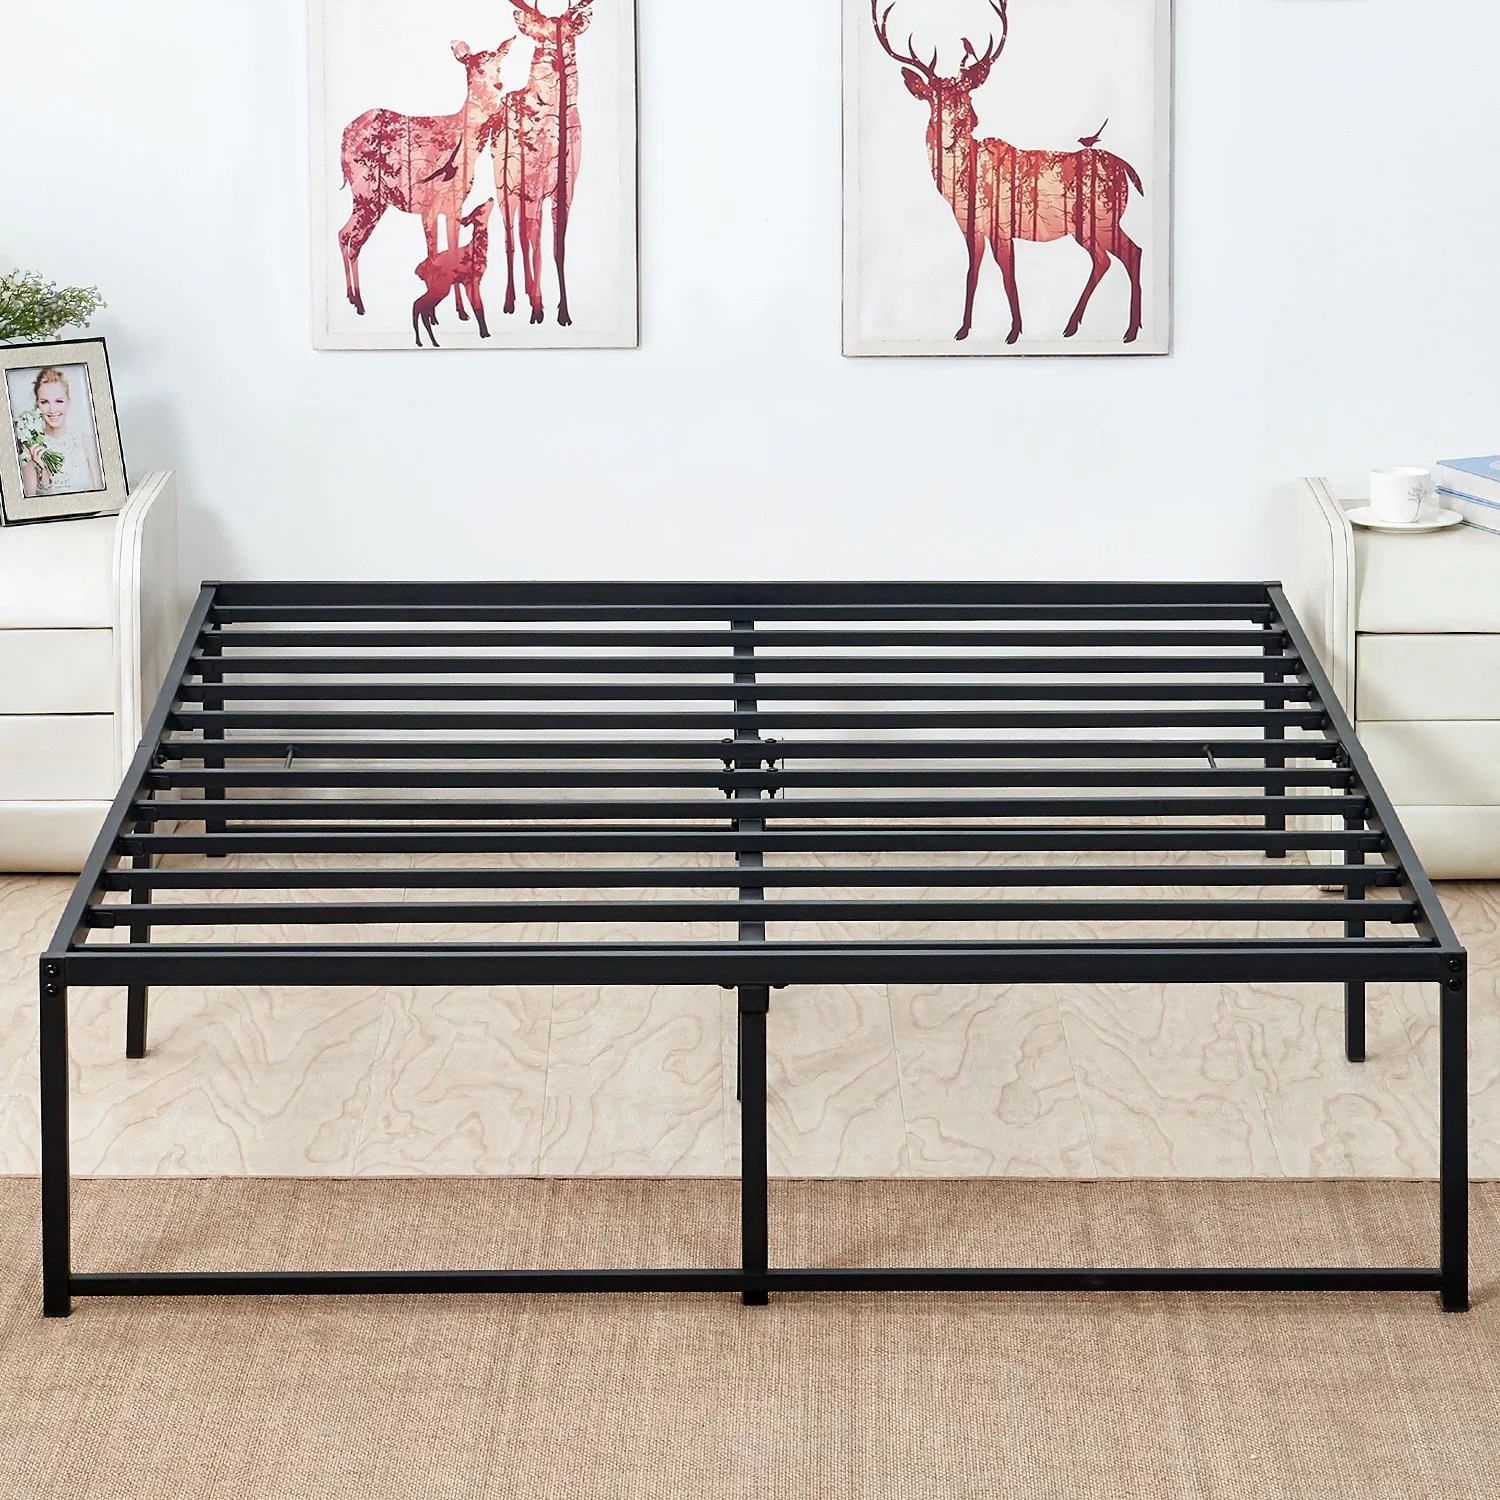 metal platform bed frame full size with storage no headboard mattress foundation no need for box spring